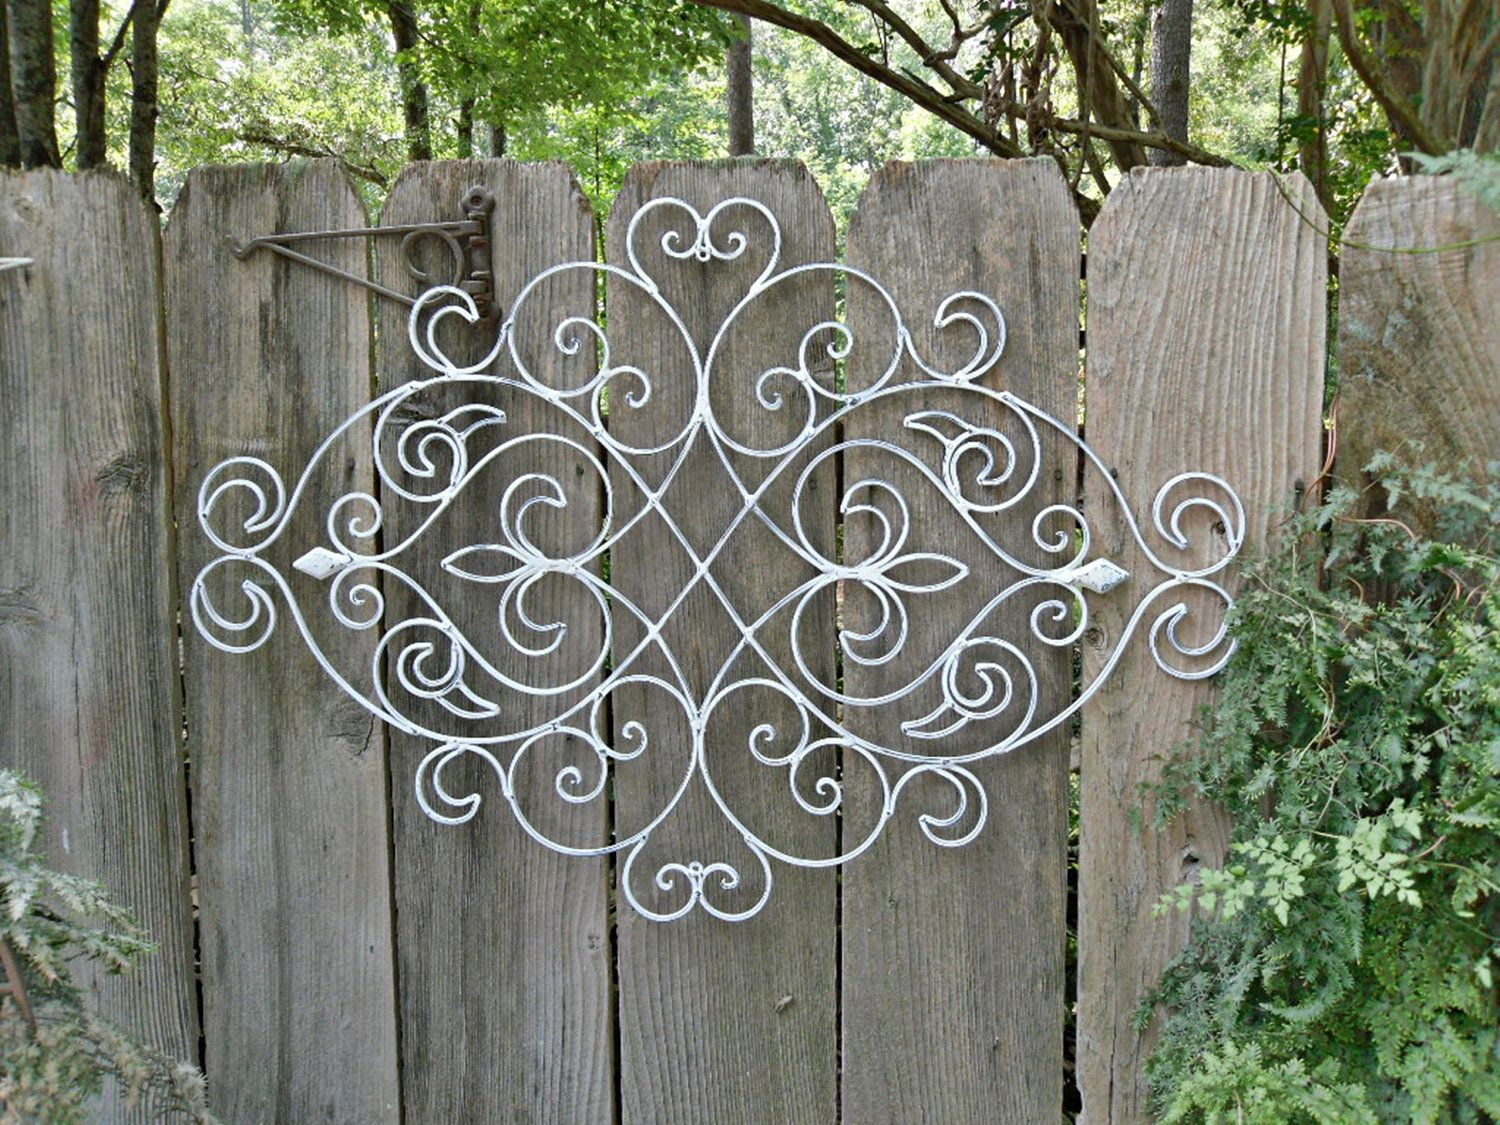 Metal Wall Decor Metal Wall Decor Wholesale Metal Flower Wall Decor Outdoor Metal Wrought Iron Wall Decor Outdoor Metal Wall Art Outdoor Wall Decor